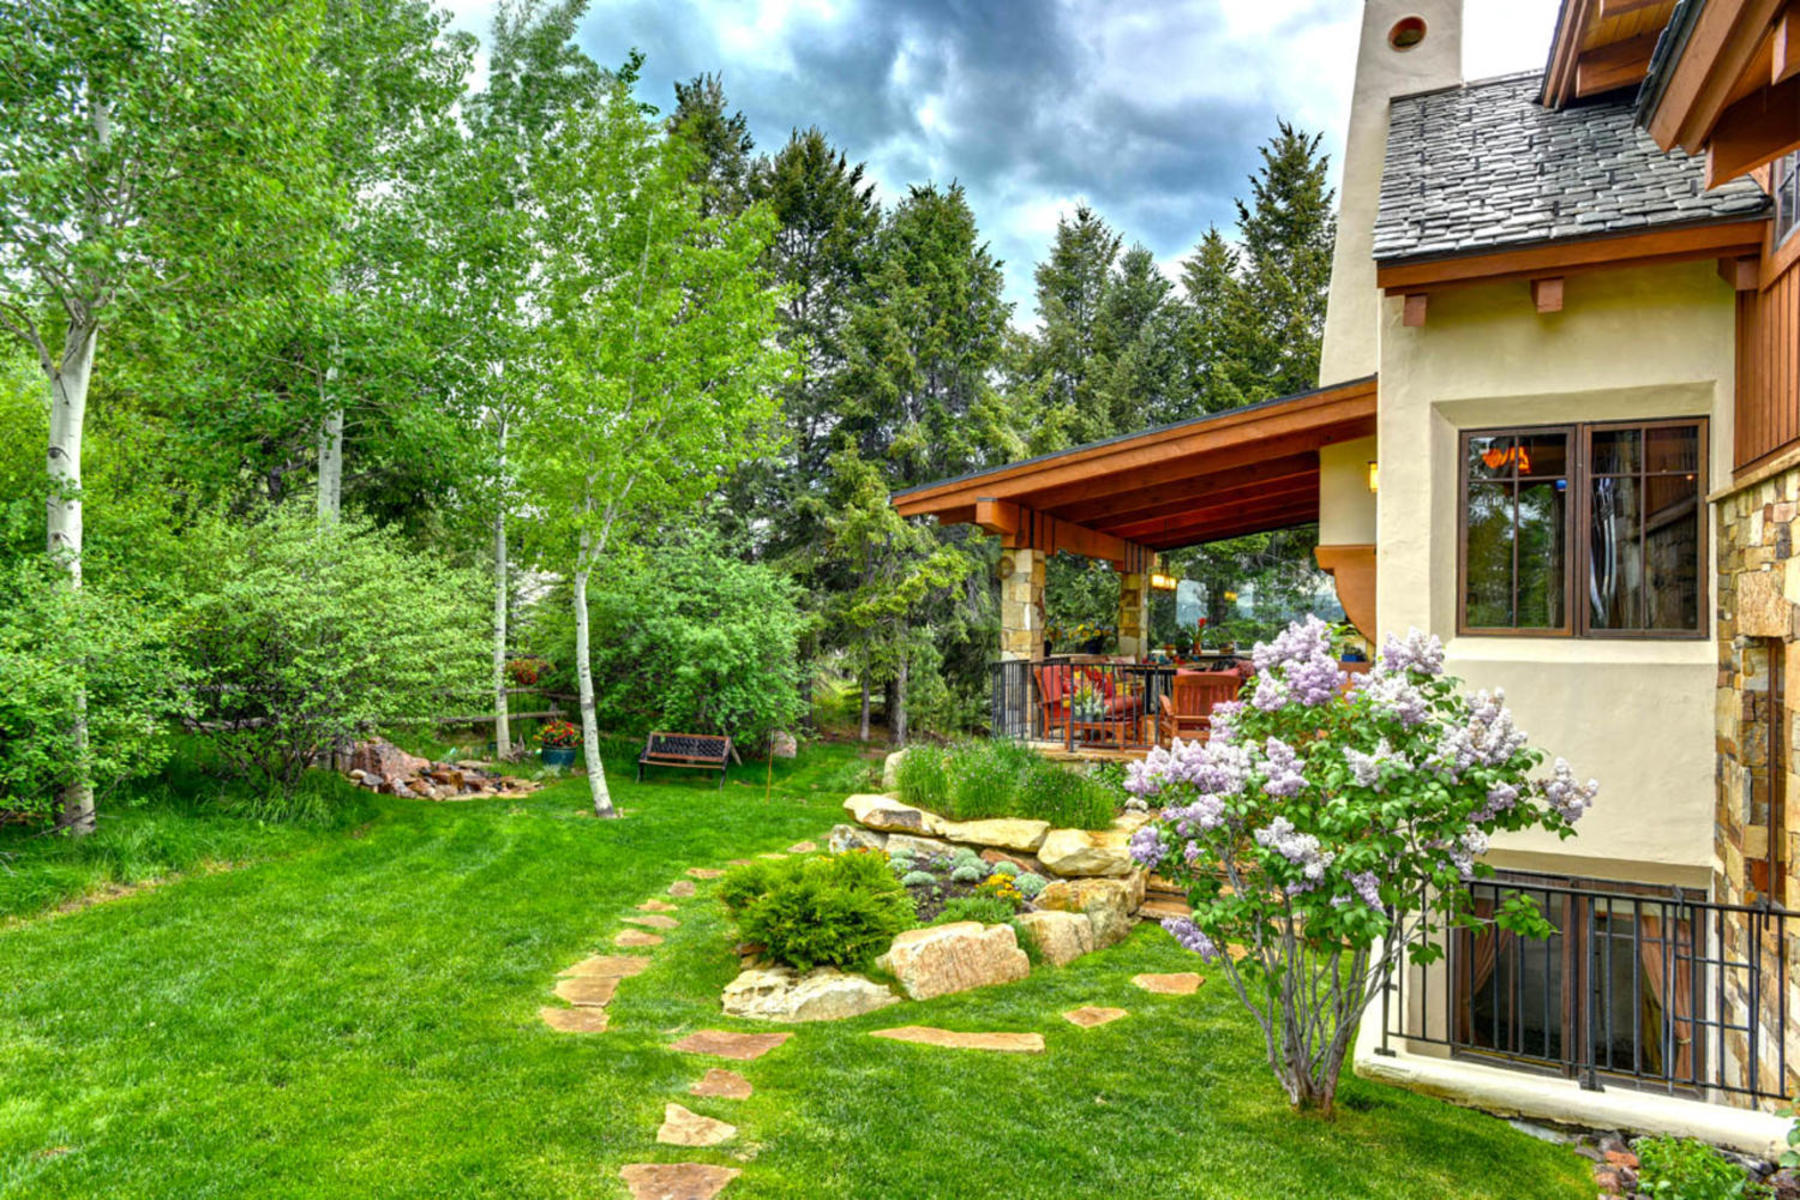 Additional photo for property listing at Custom Home with Contemporary & European Influences 382 El Mirador Edwards, Colorado 81632 United States